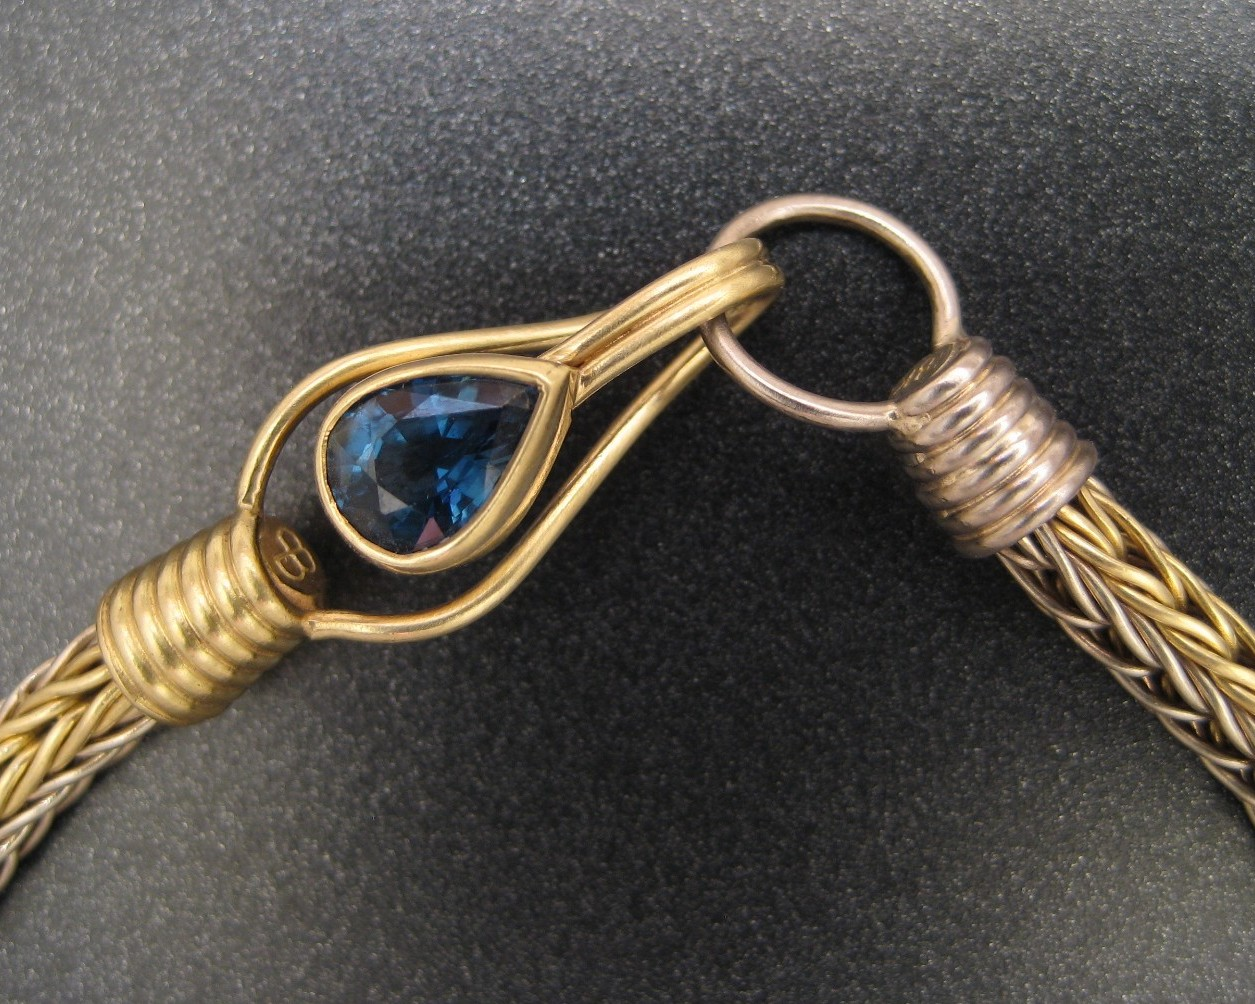 A closeup of a finished Roman Chain now mounted on a custom clasp and set with a fine Sapphire.